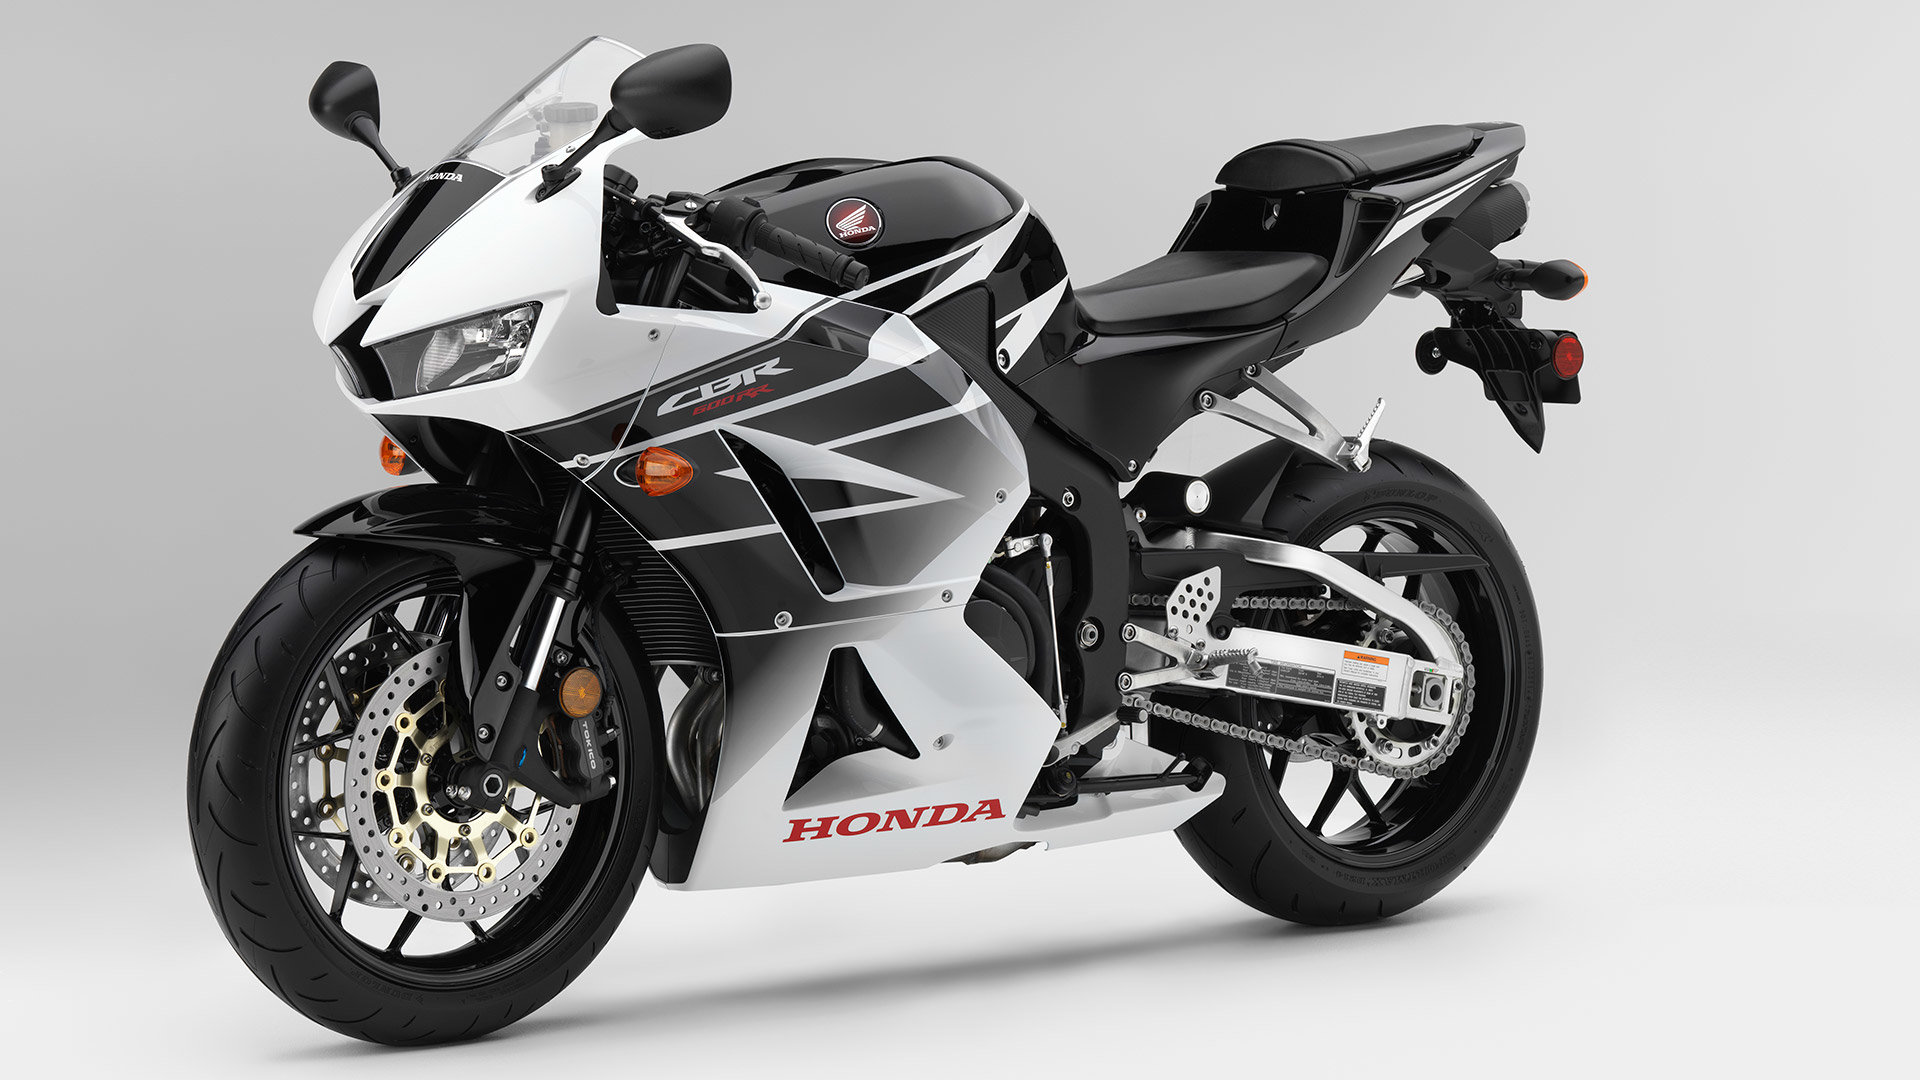 honda cbr600rr wallpapers 1920x1080 full hd (1080p) desktop backgrounds